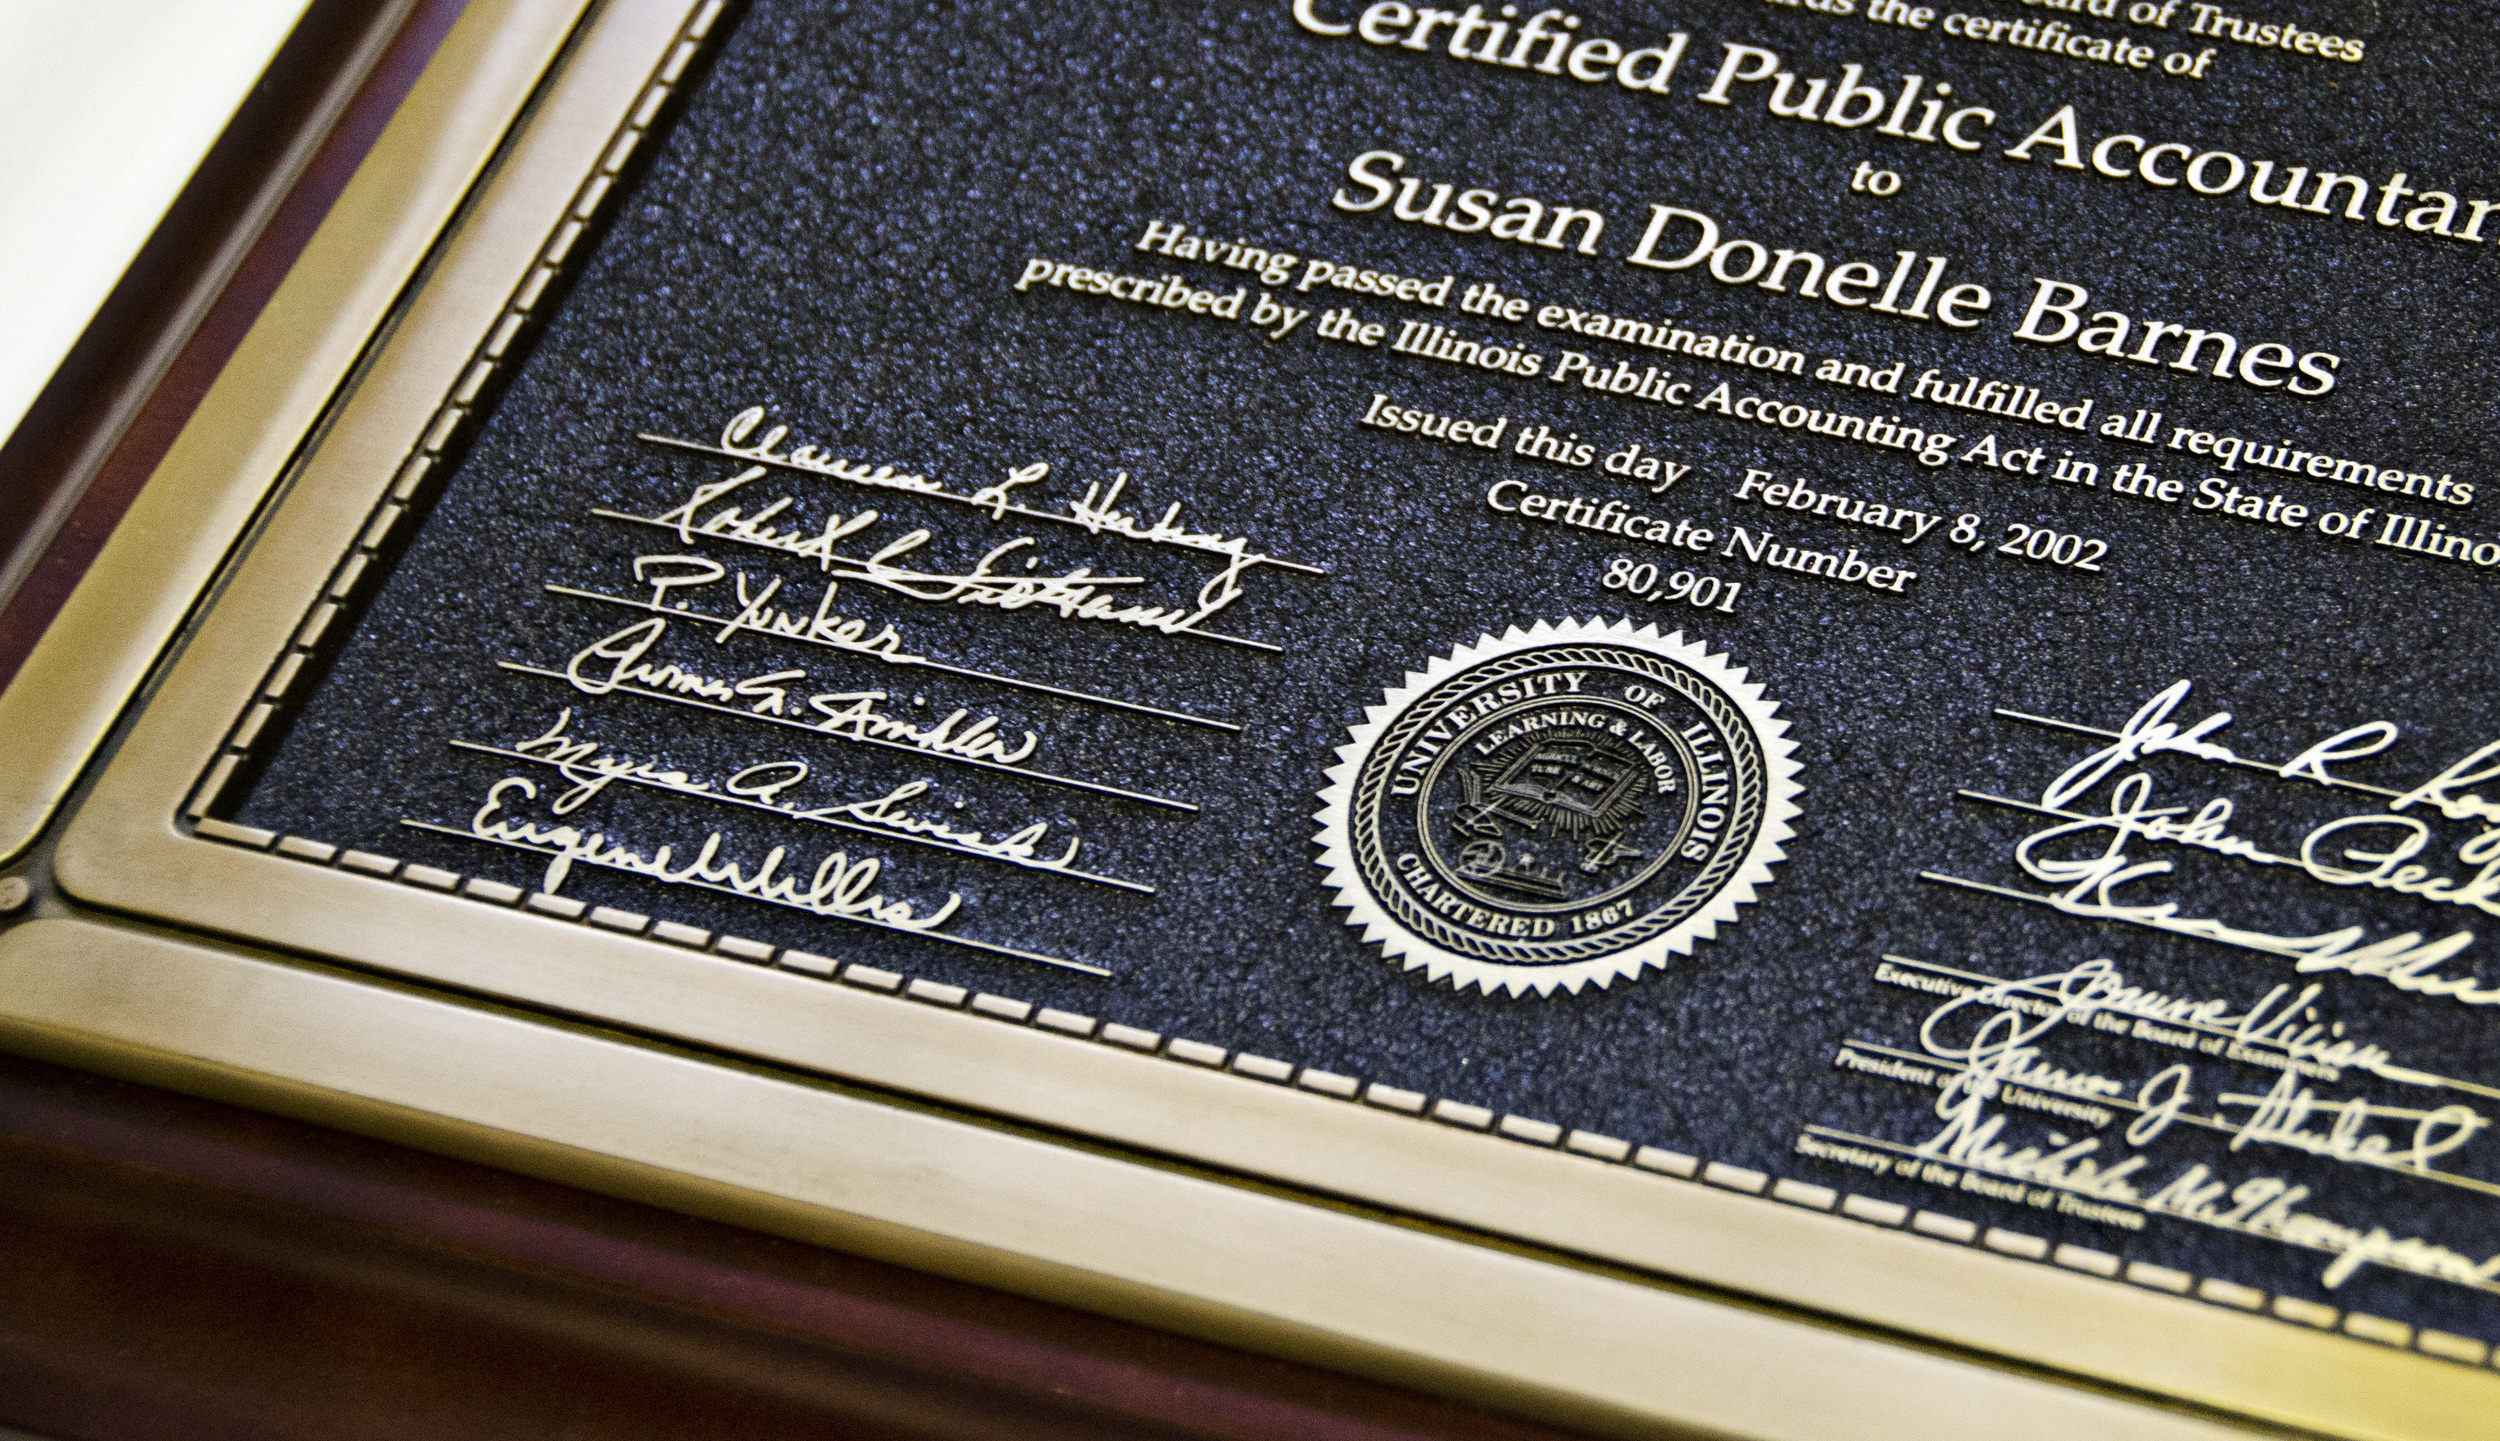 Certificate Etched in Magnesium